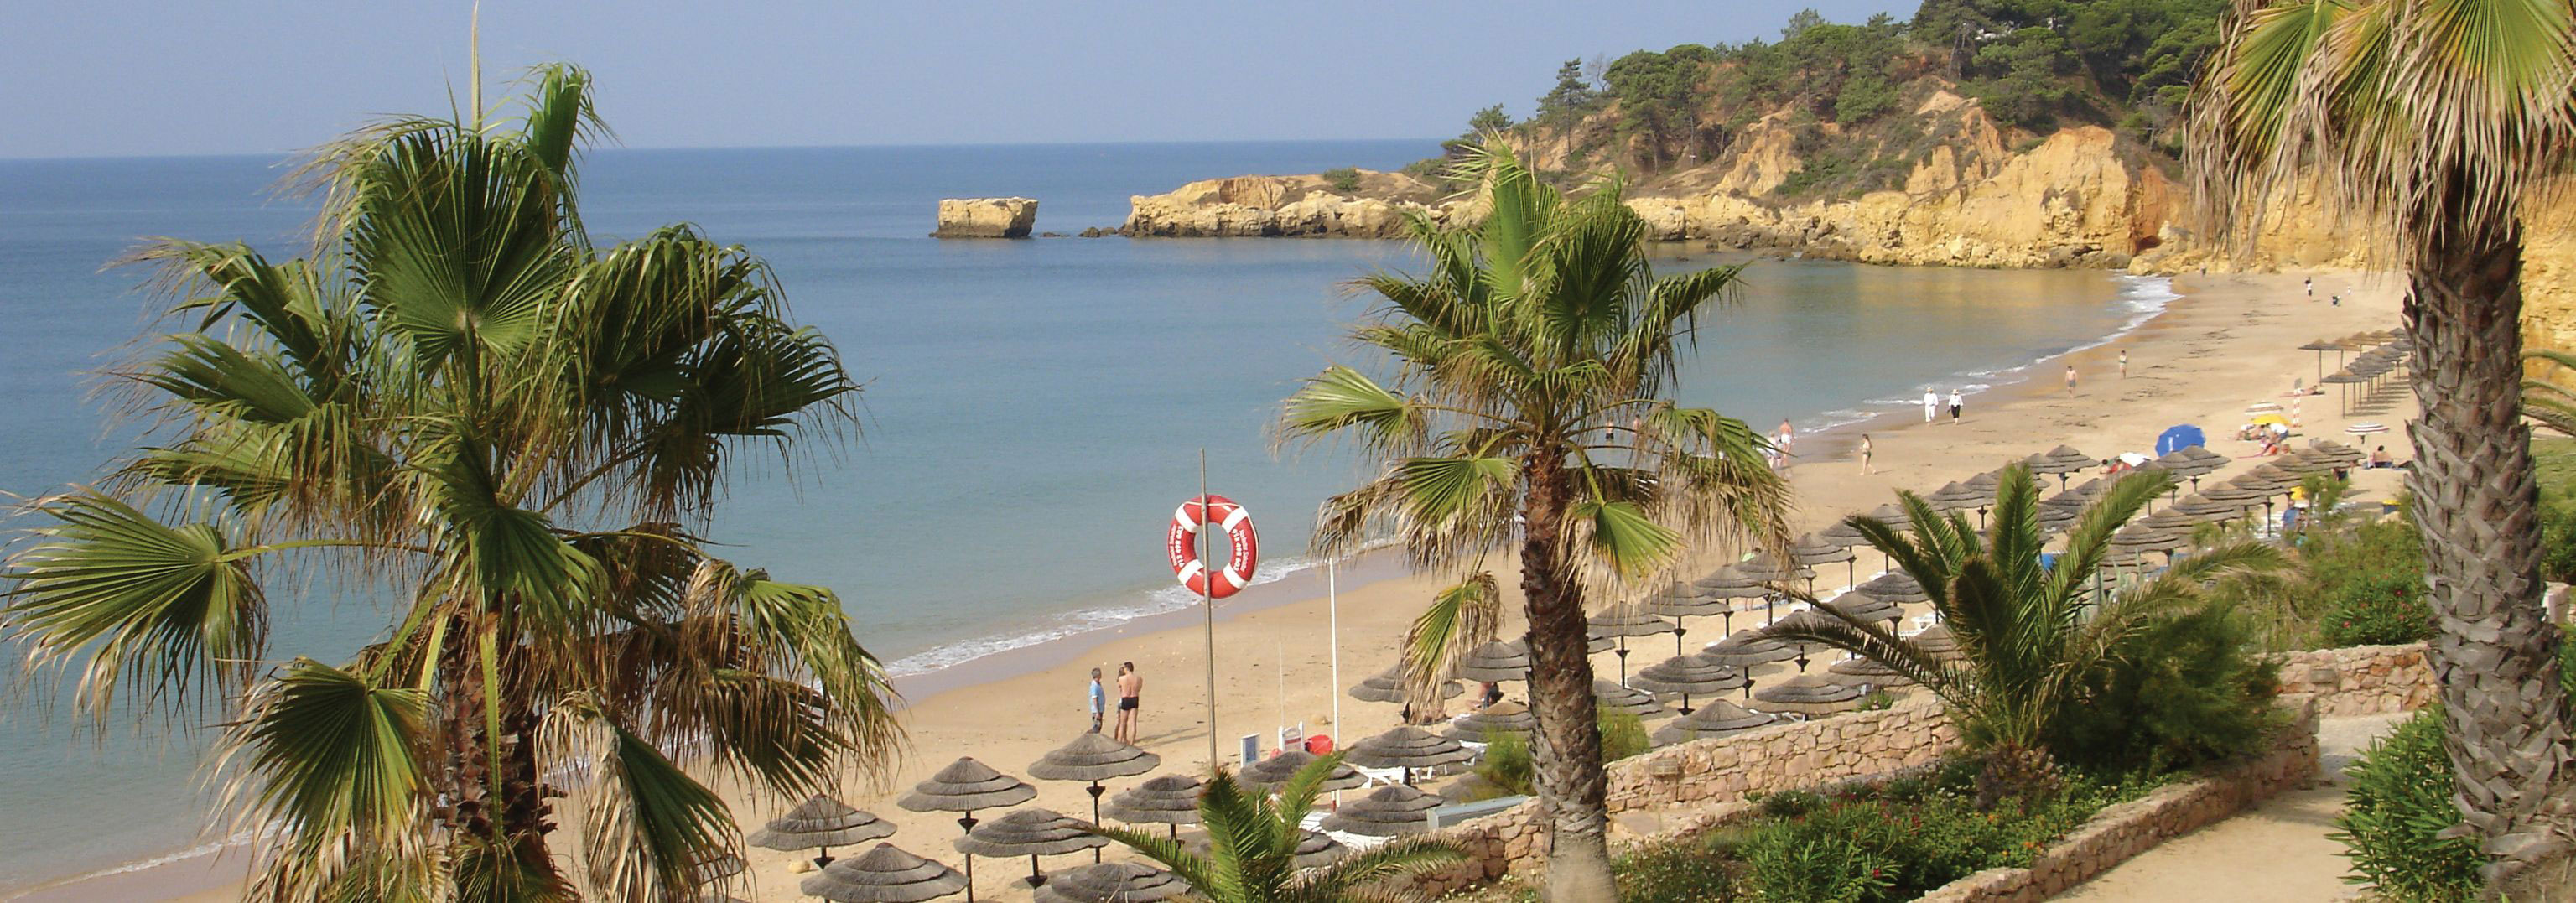 Sunway offer holidays to Santa Eulalia, Algarve, Portugal